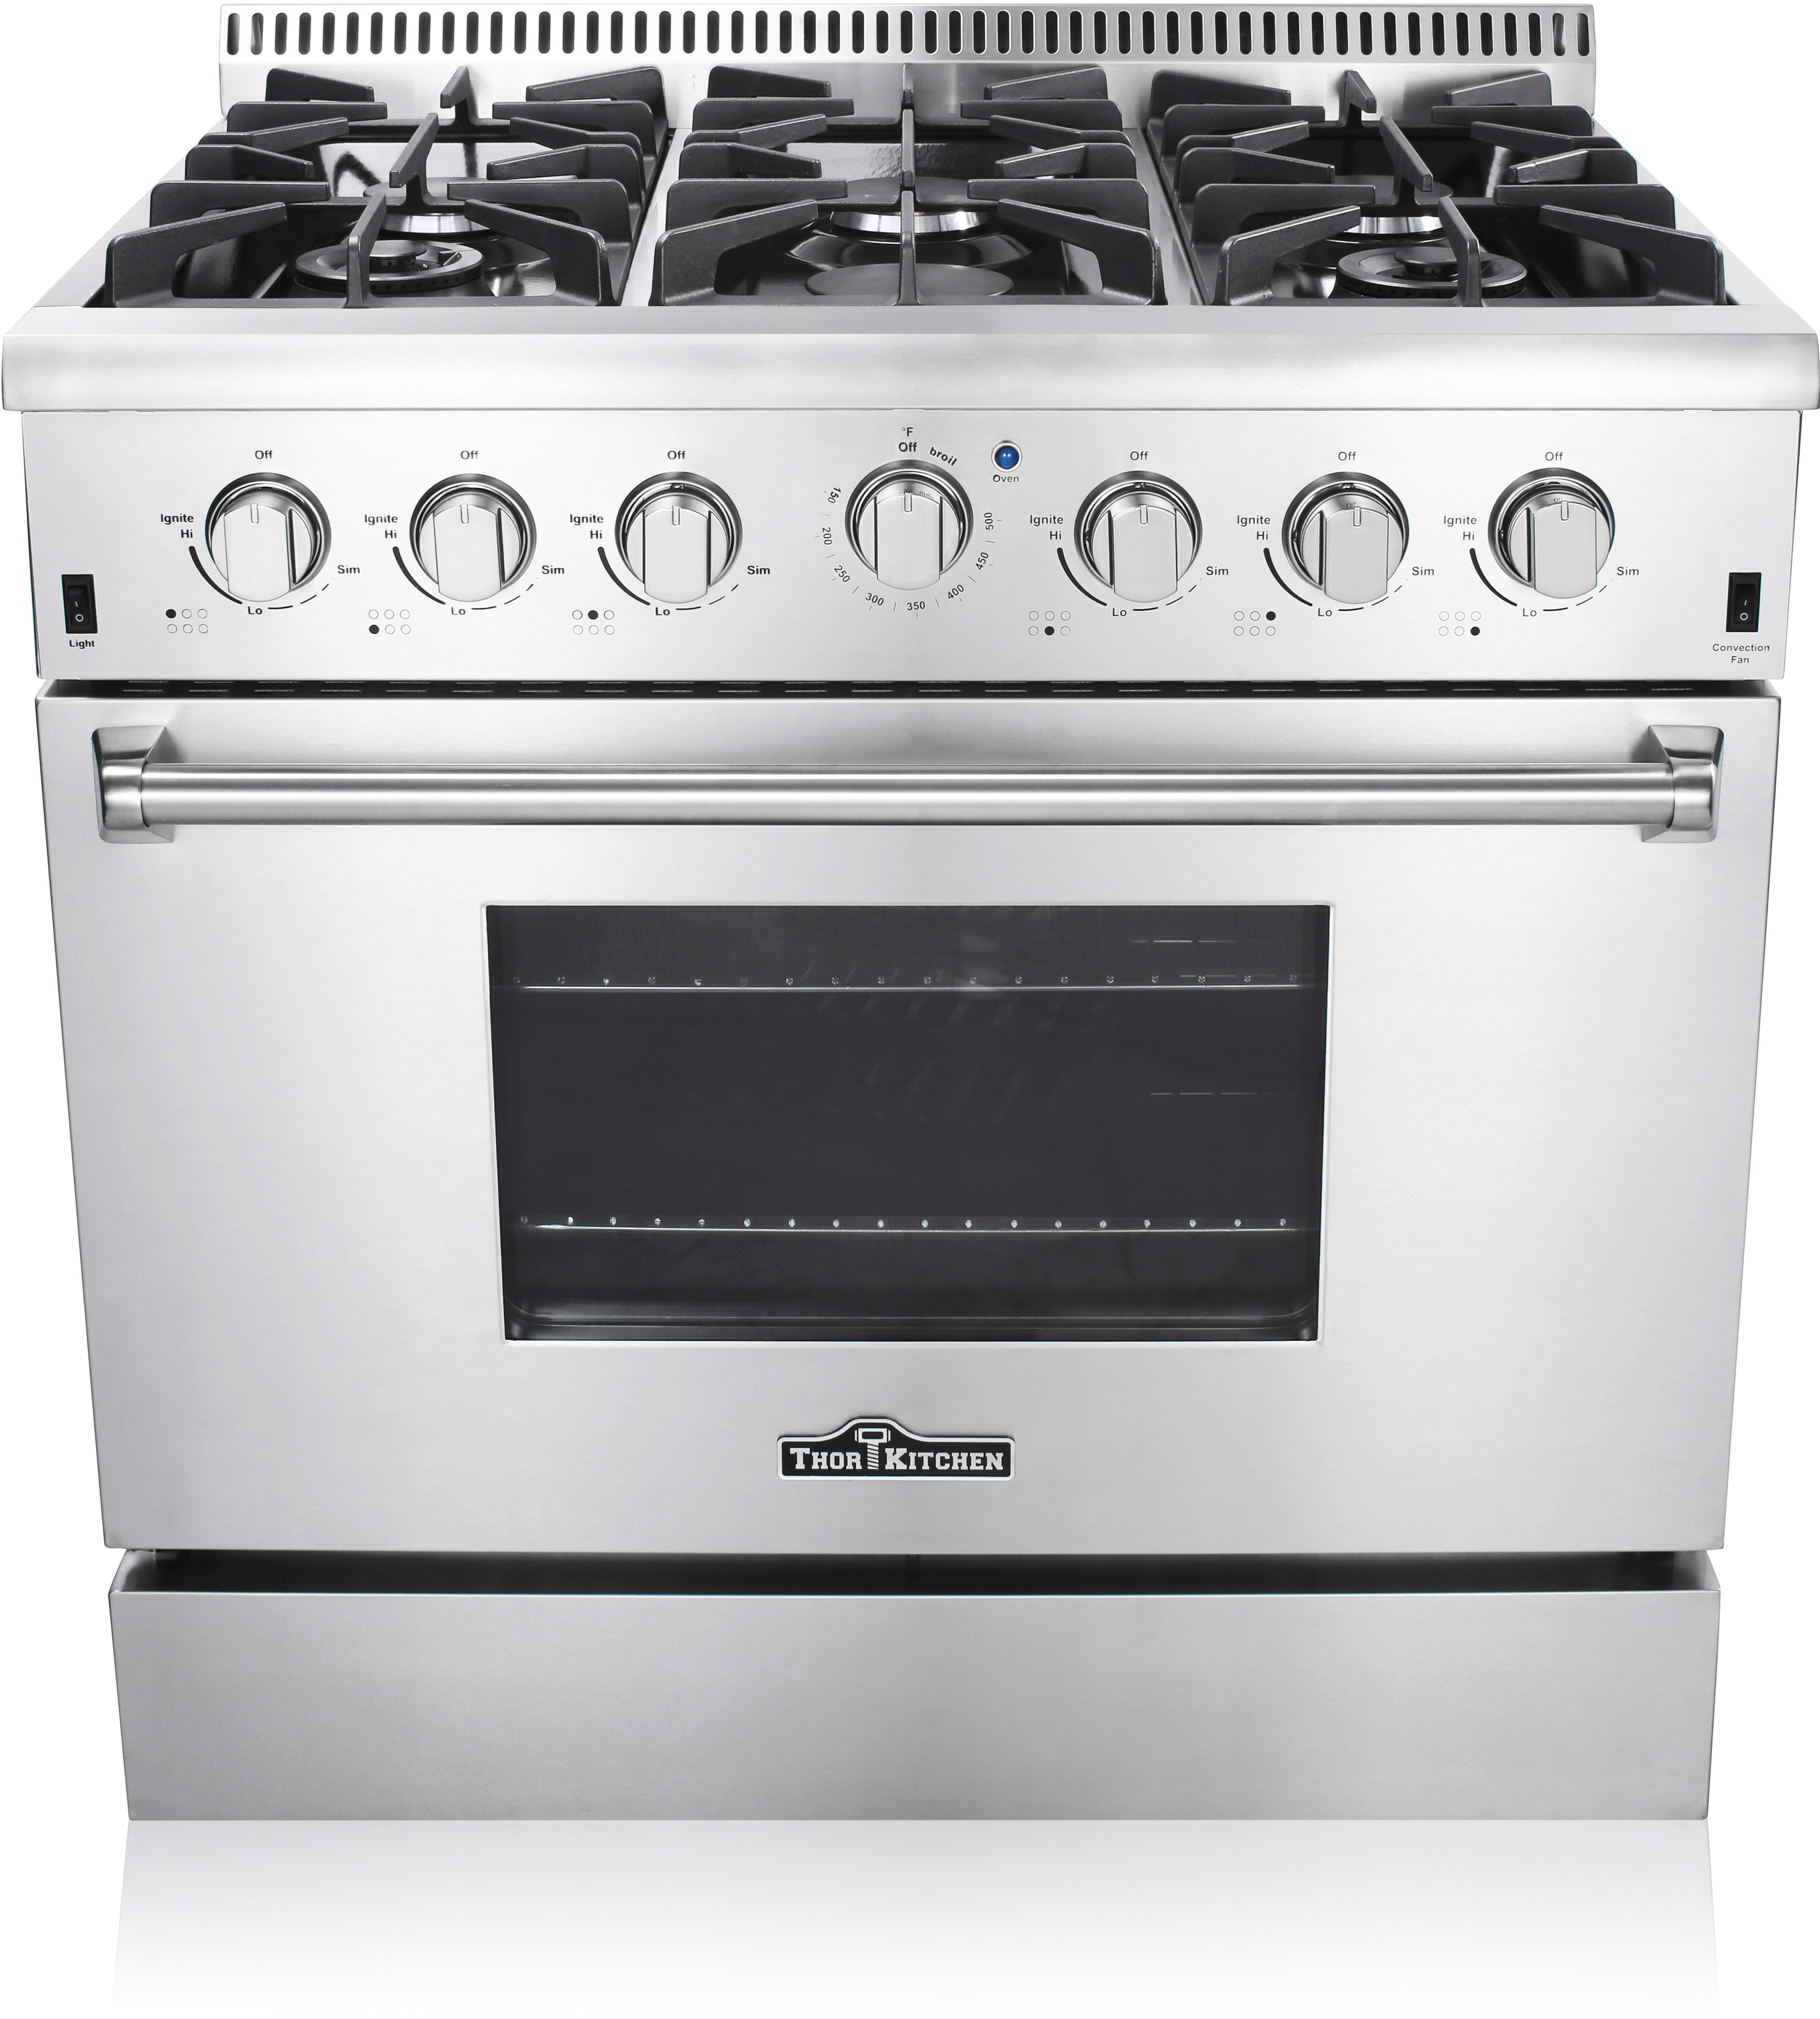 Thor Kitchen HRG3618U 36 Inch Freestanding Gas Range with Convection ...